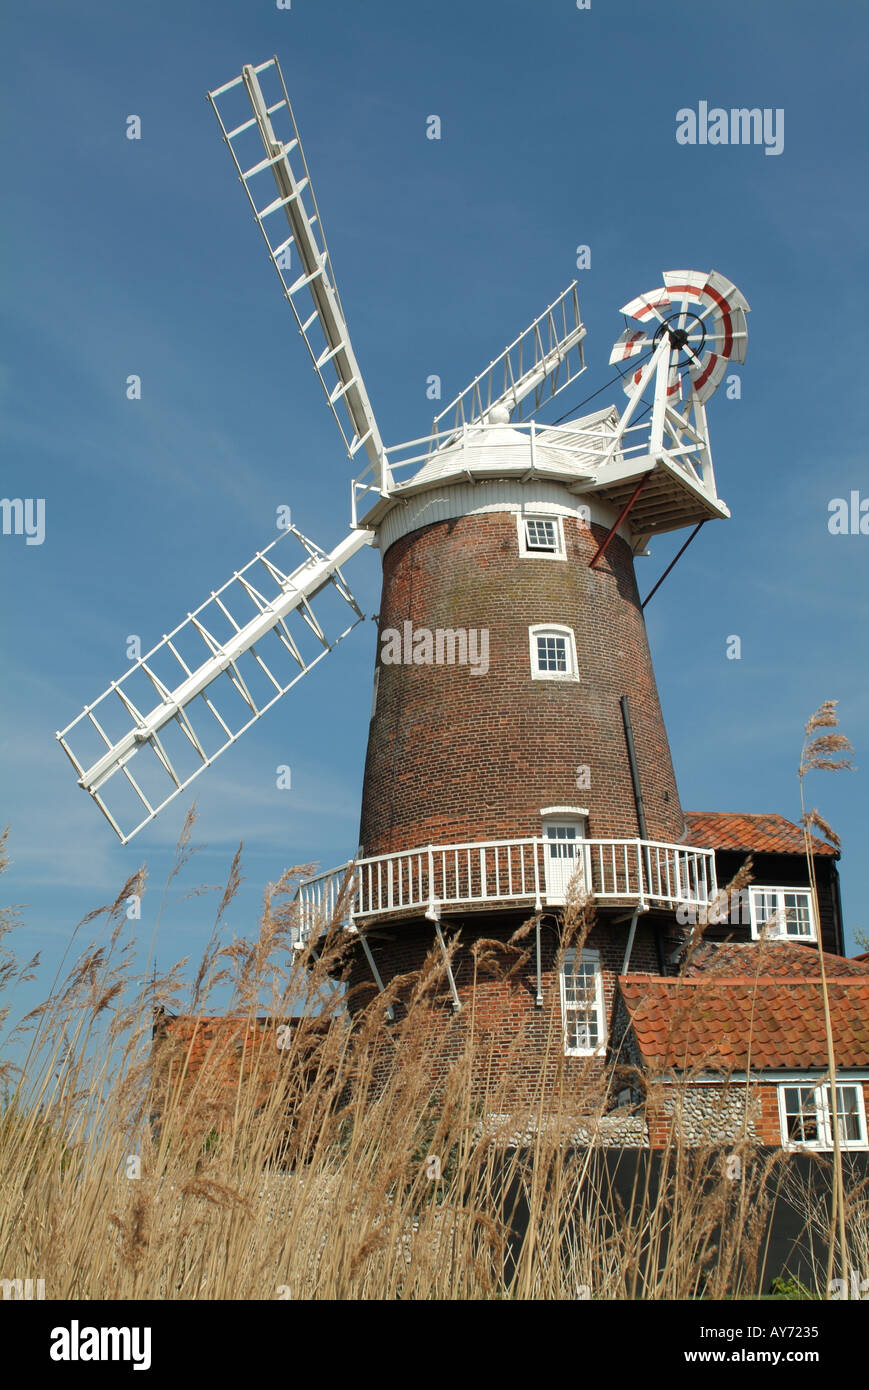 Cley Windmill at Cley next the Sea, Norfolk, England, UK. - Stock Image